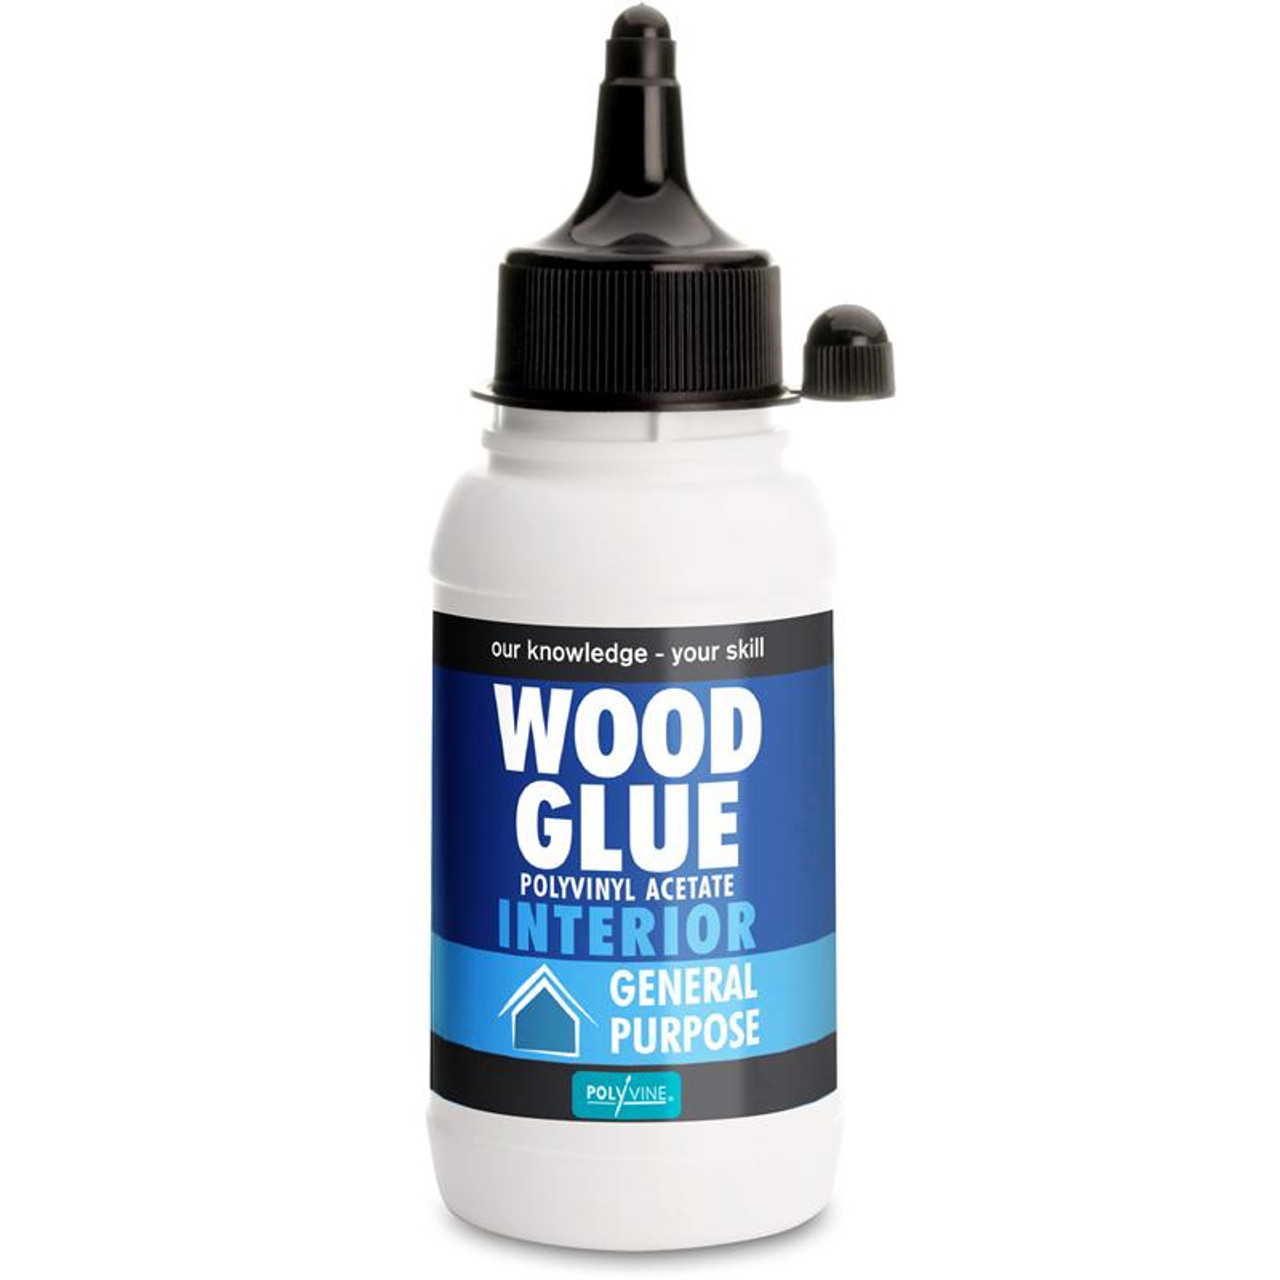 Polyvine Adhesive Interior Wood Glue